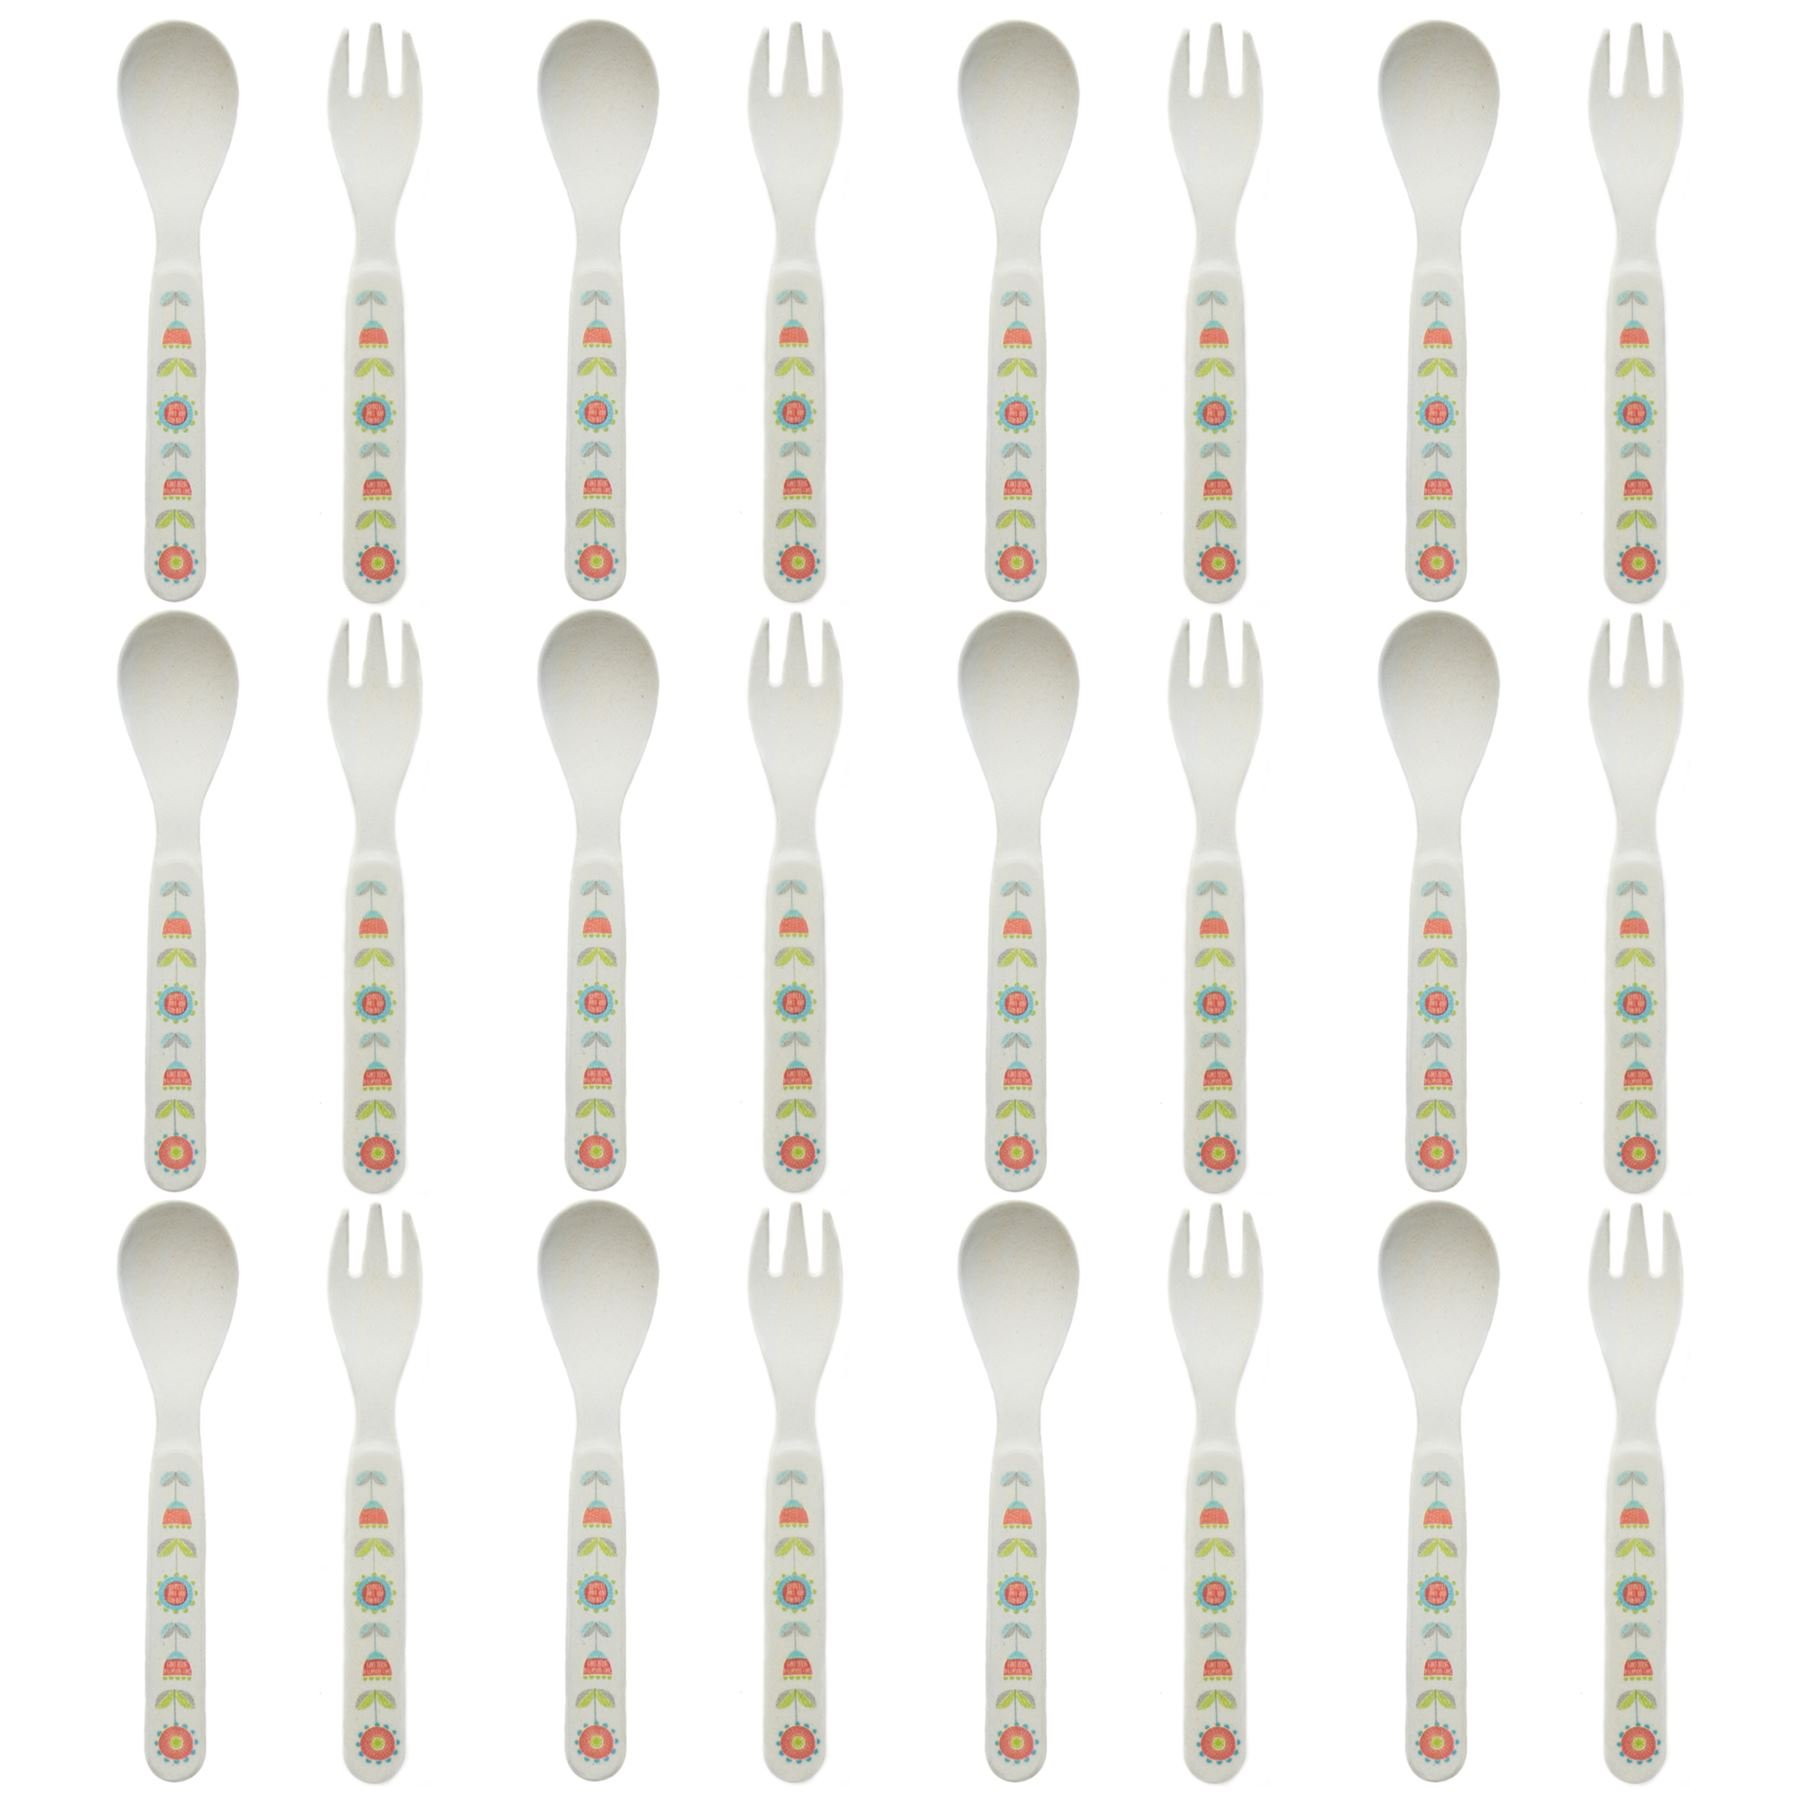 Tiny Dining Children's Bamboo Fibre Dining Fork & Spoon Cutlery Set - Flower - Pack of 12 by Tiny Dining (Image #1)